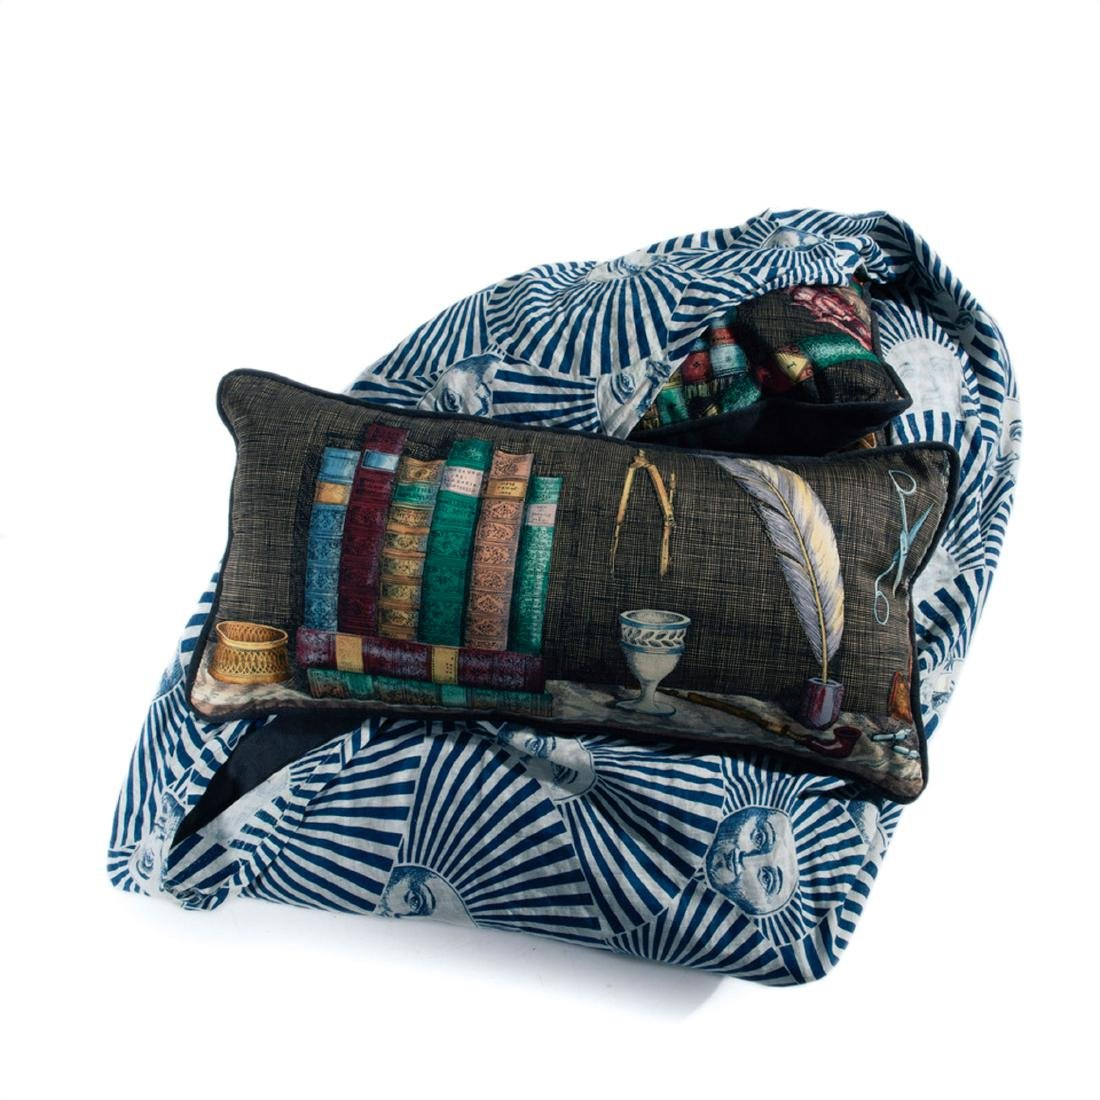 Three 'Libreria' cushions and bedspread, in 'Sole'